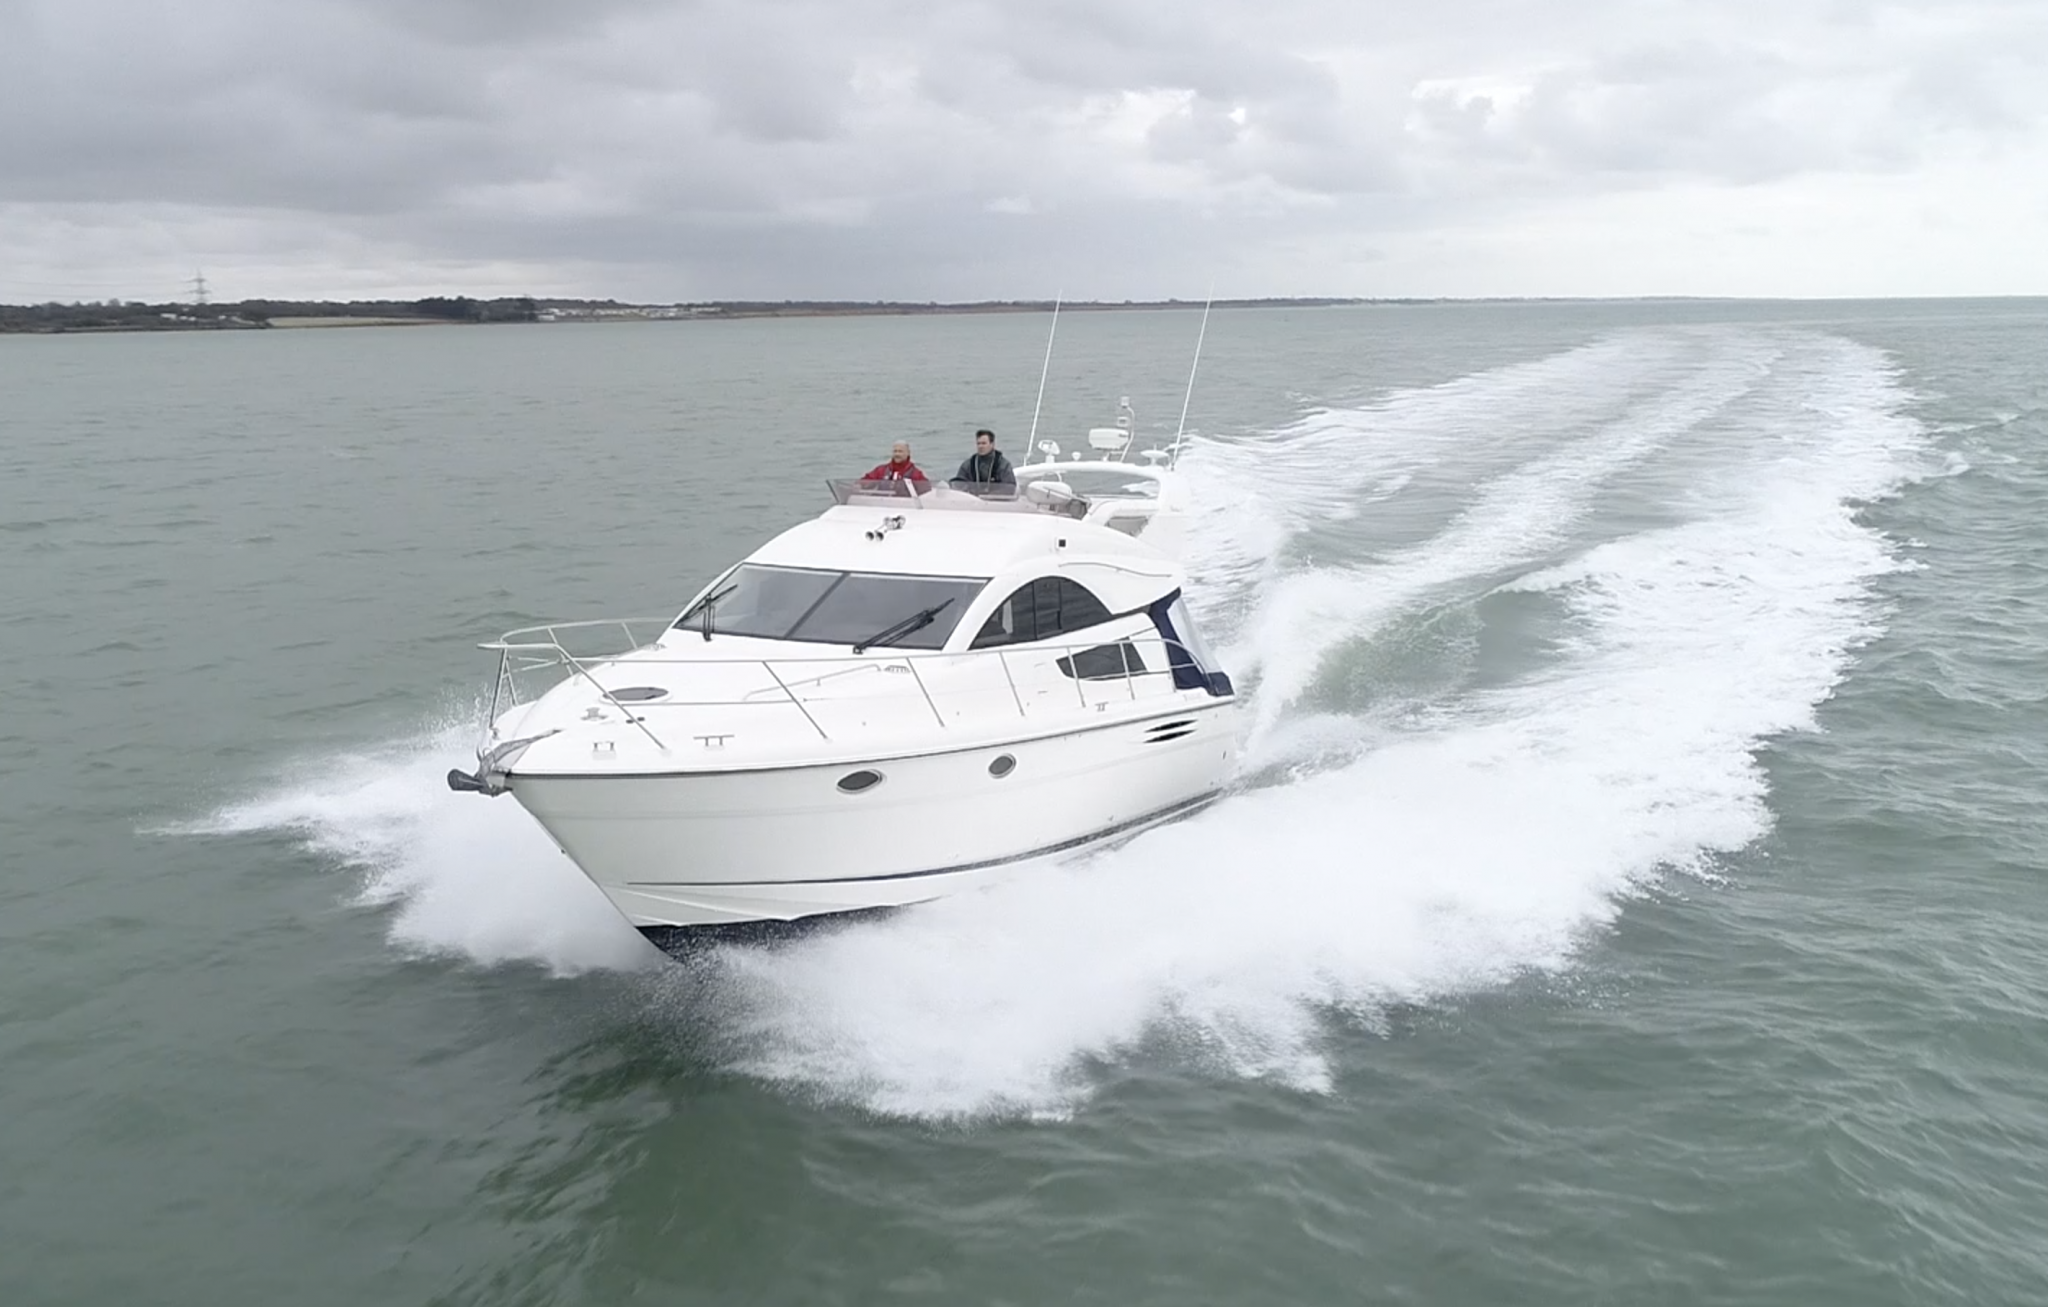 Fairline Phantom 40 drone